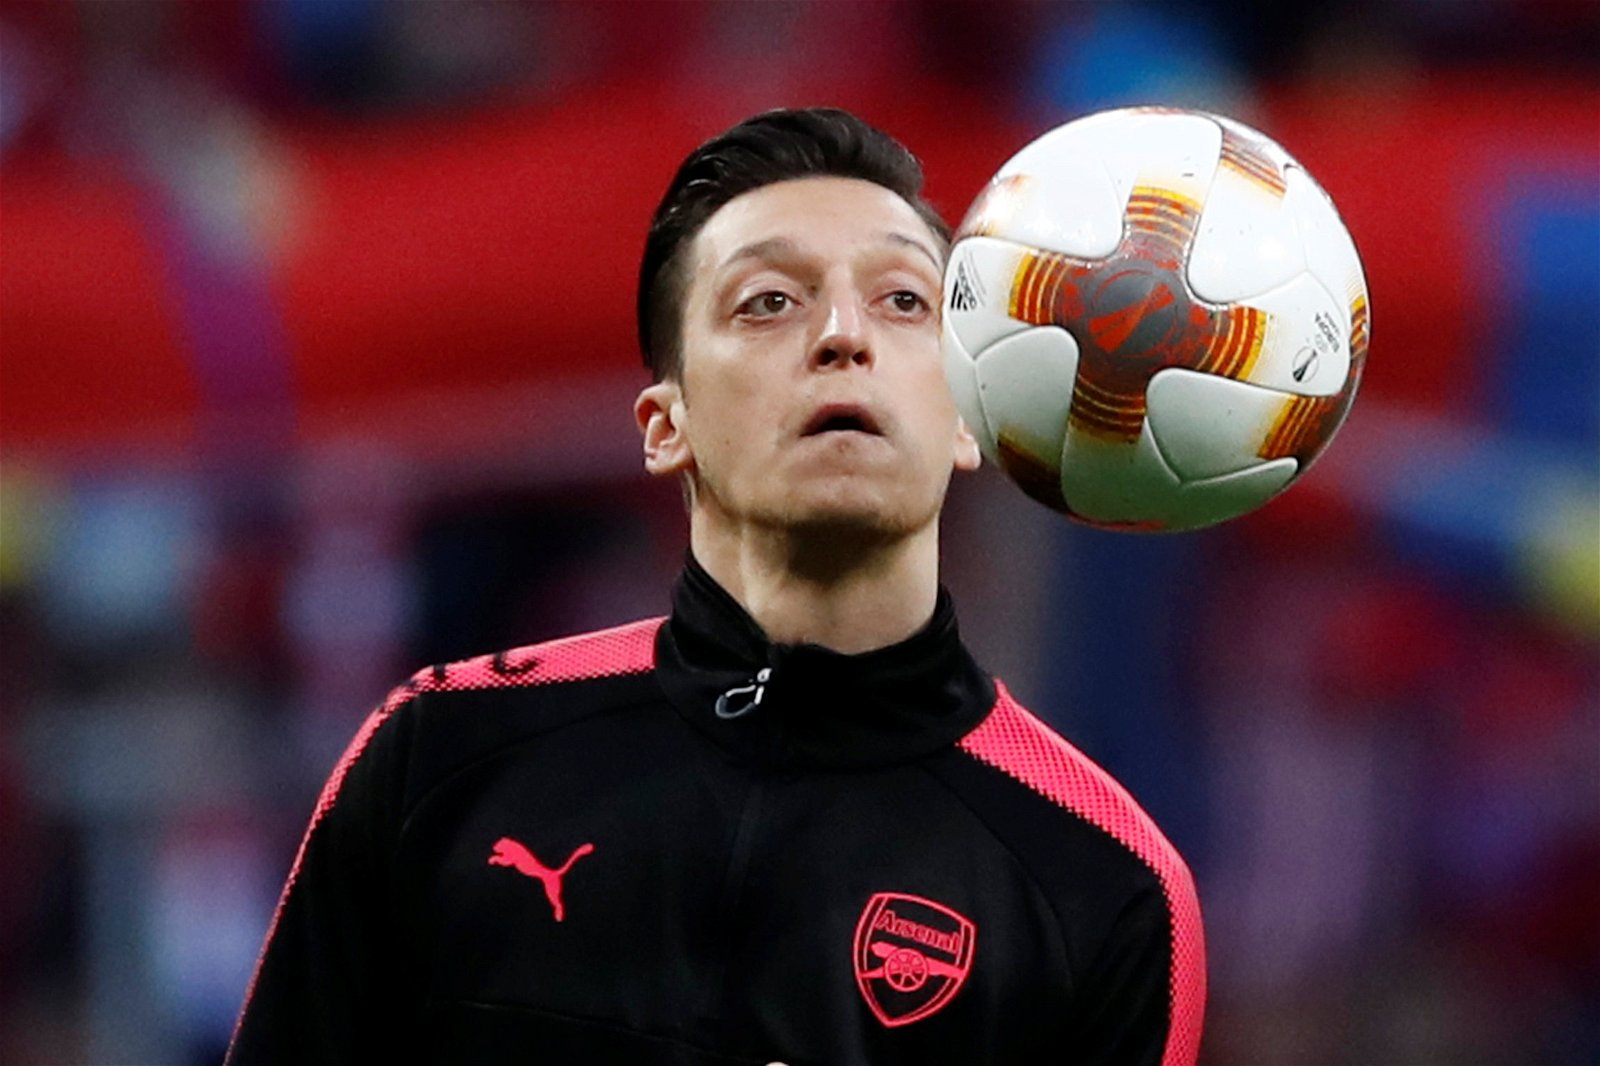 Mesut Ozil looks at the ball in training